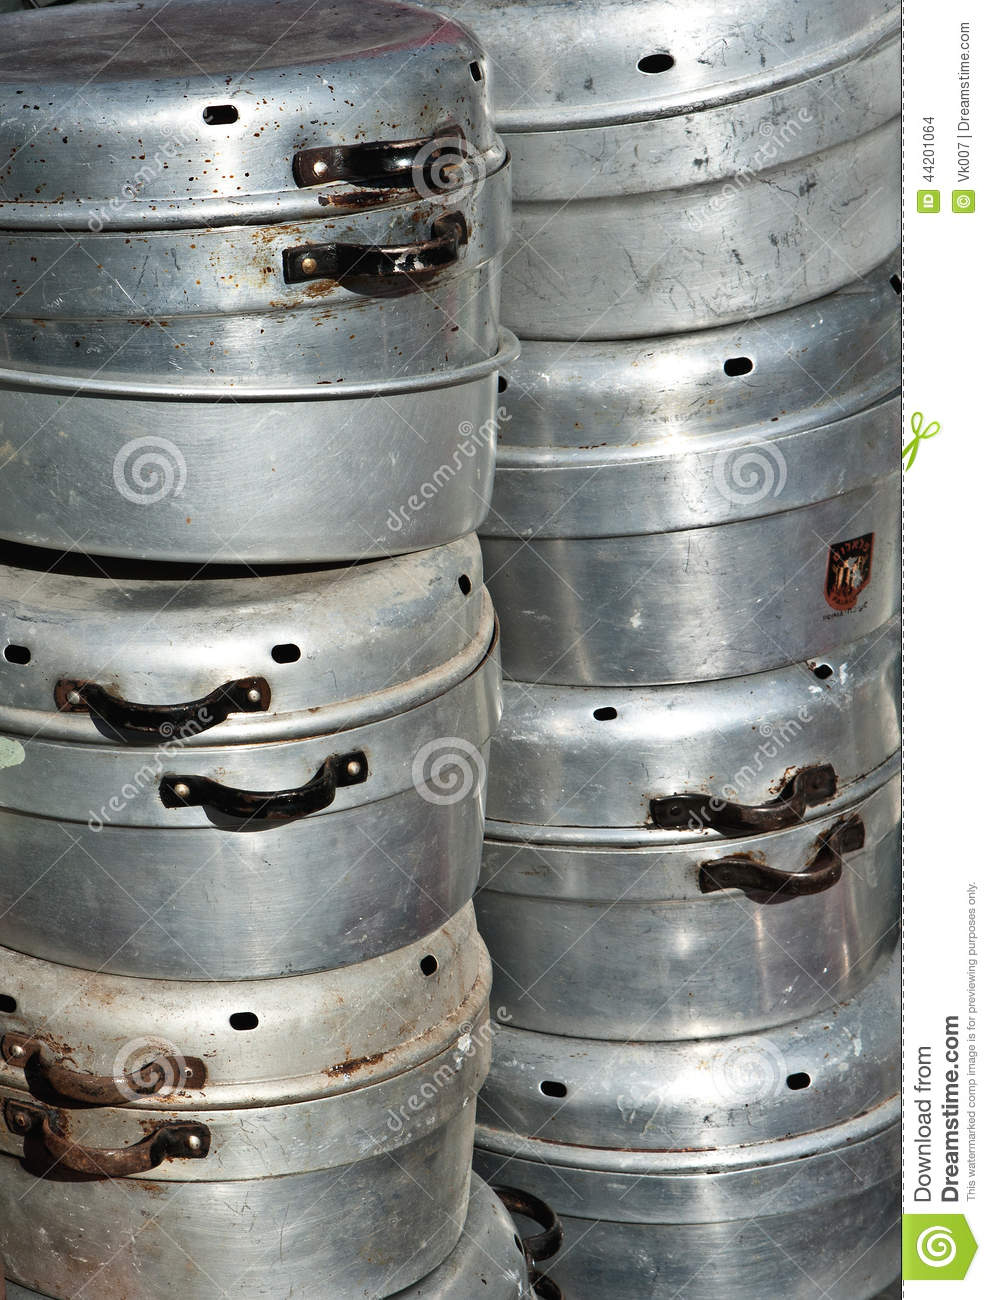 Old Aluminum Cookware Stock Photo Image 44201064